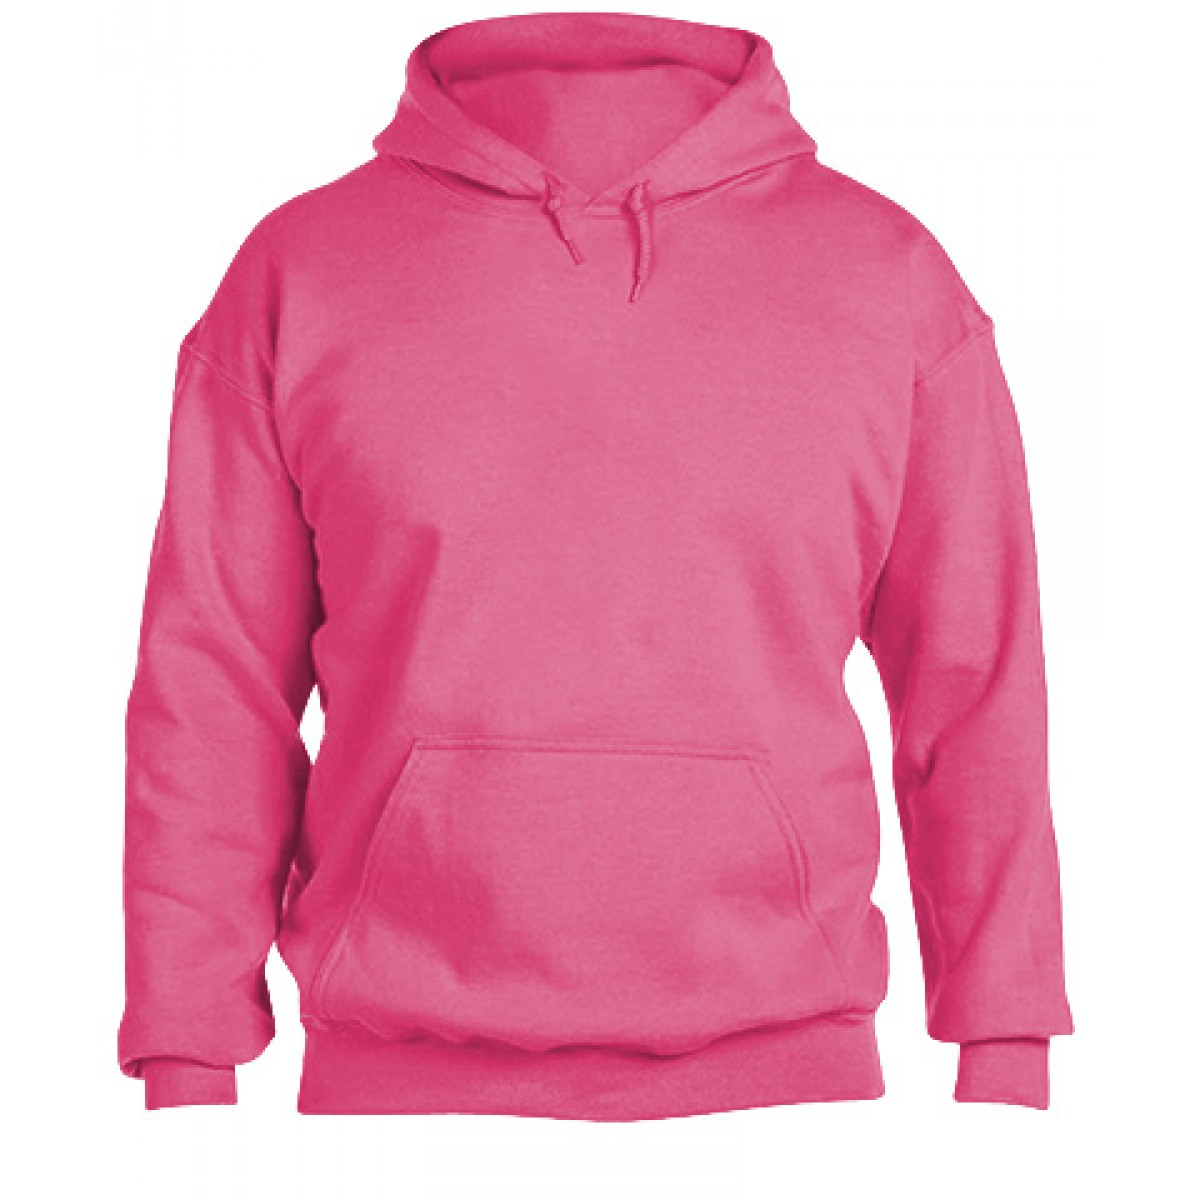 Hooded Sweatshirt 50/50 Heavy Blend -Safety Pink-S